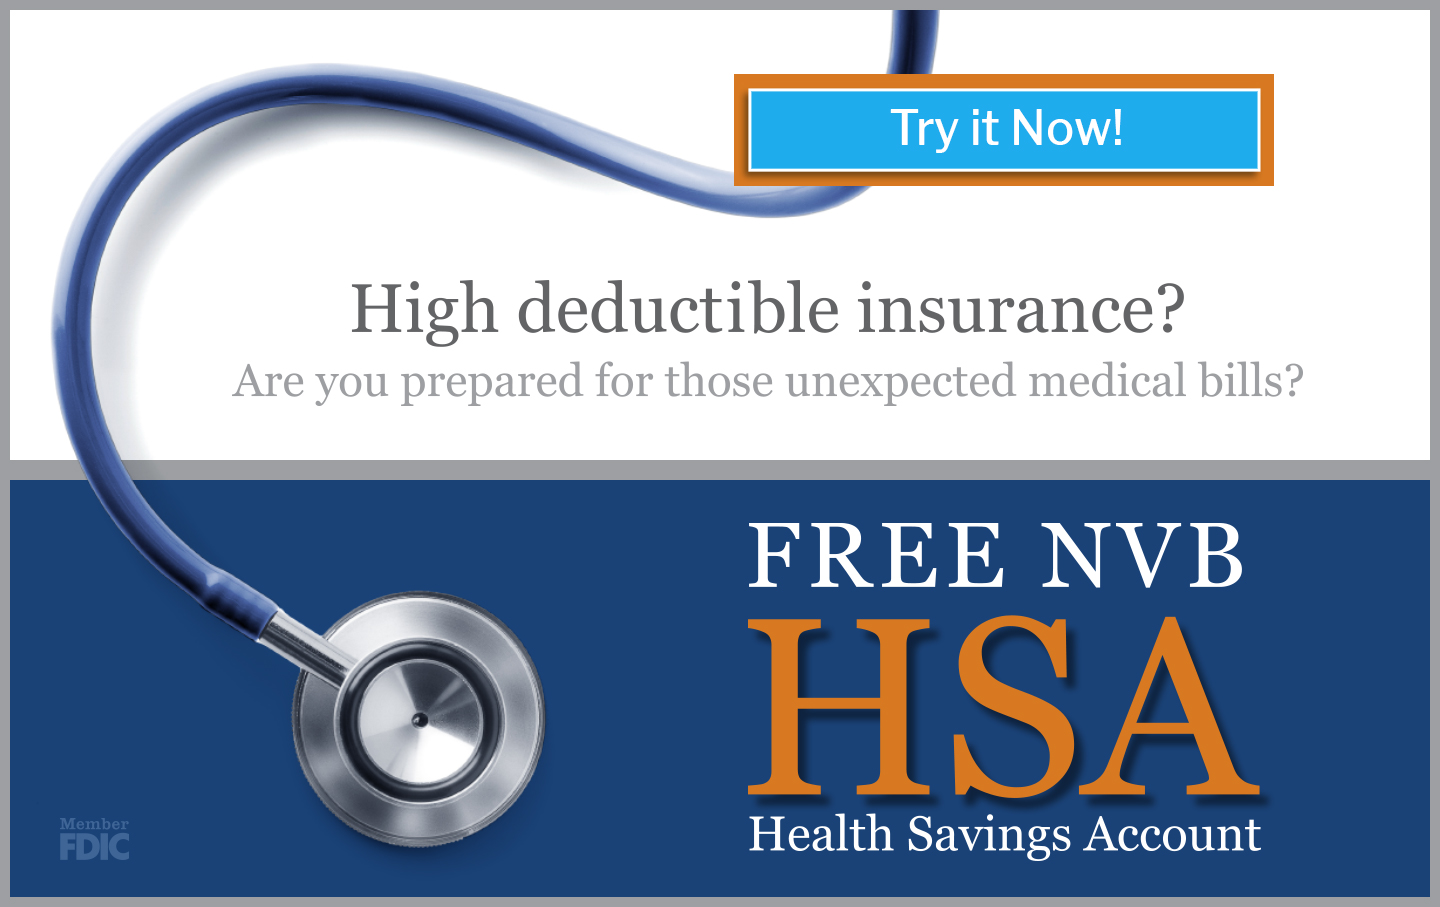 Image of stethoscope with text promoting HSA accounts!